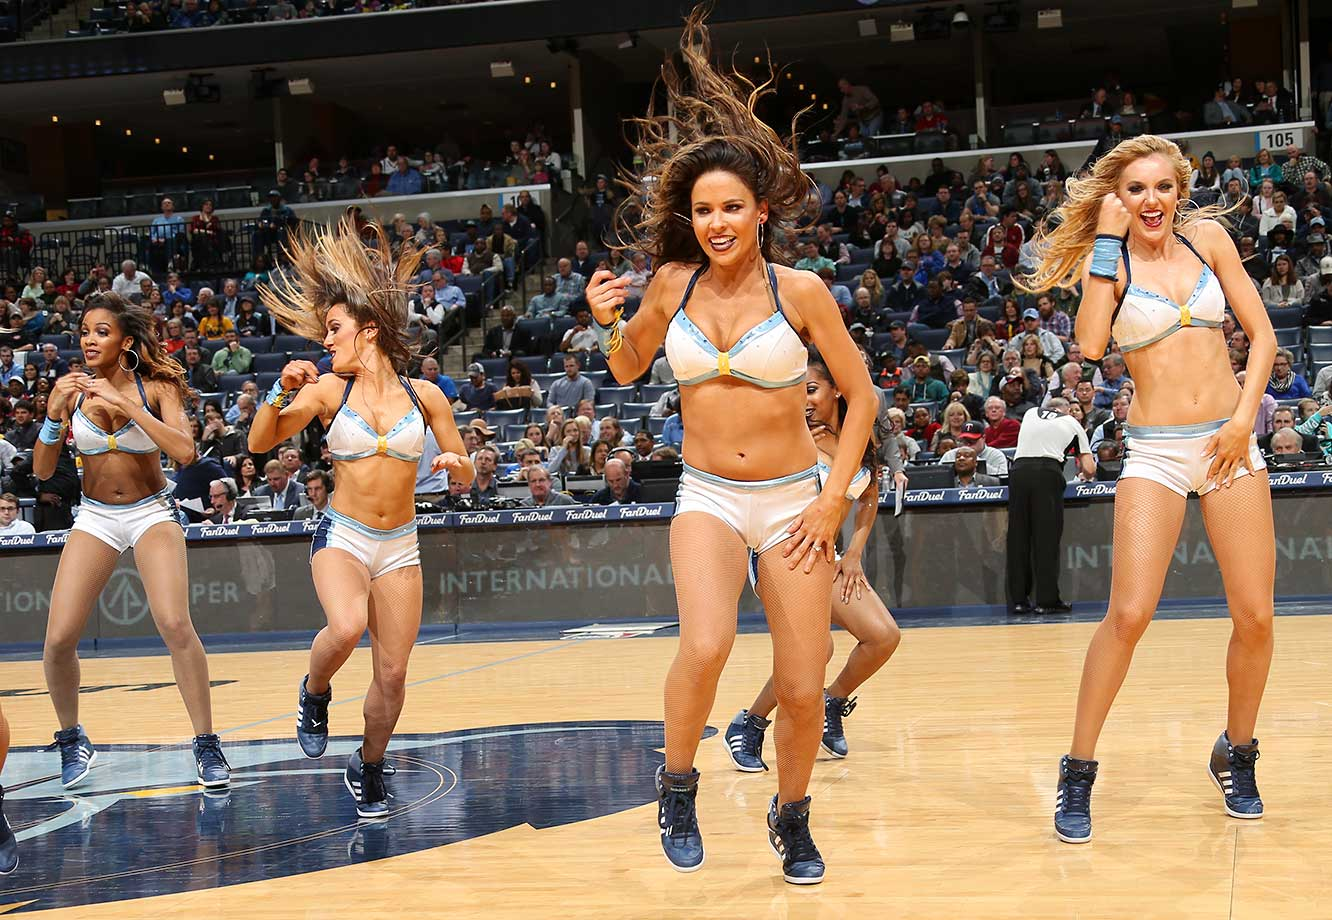 The Memphis Grizzlies dance team is seen during the game against the Orlando Magic.